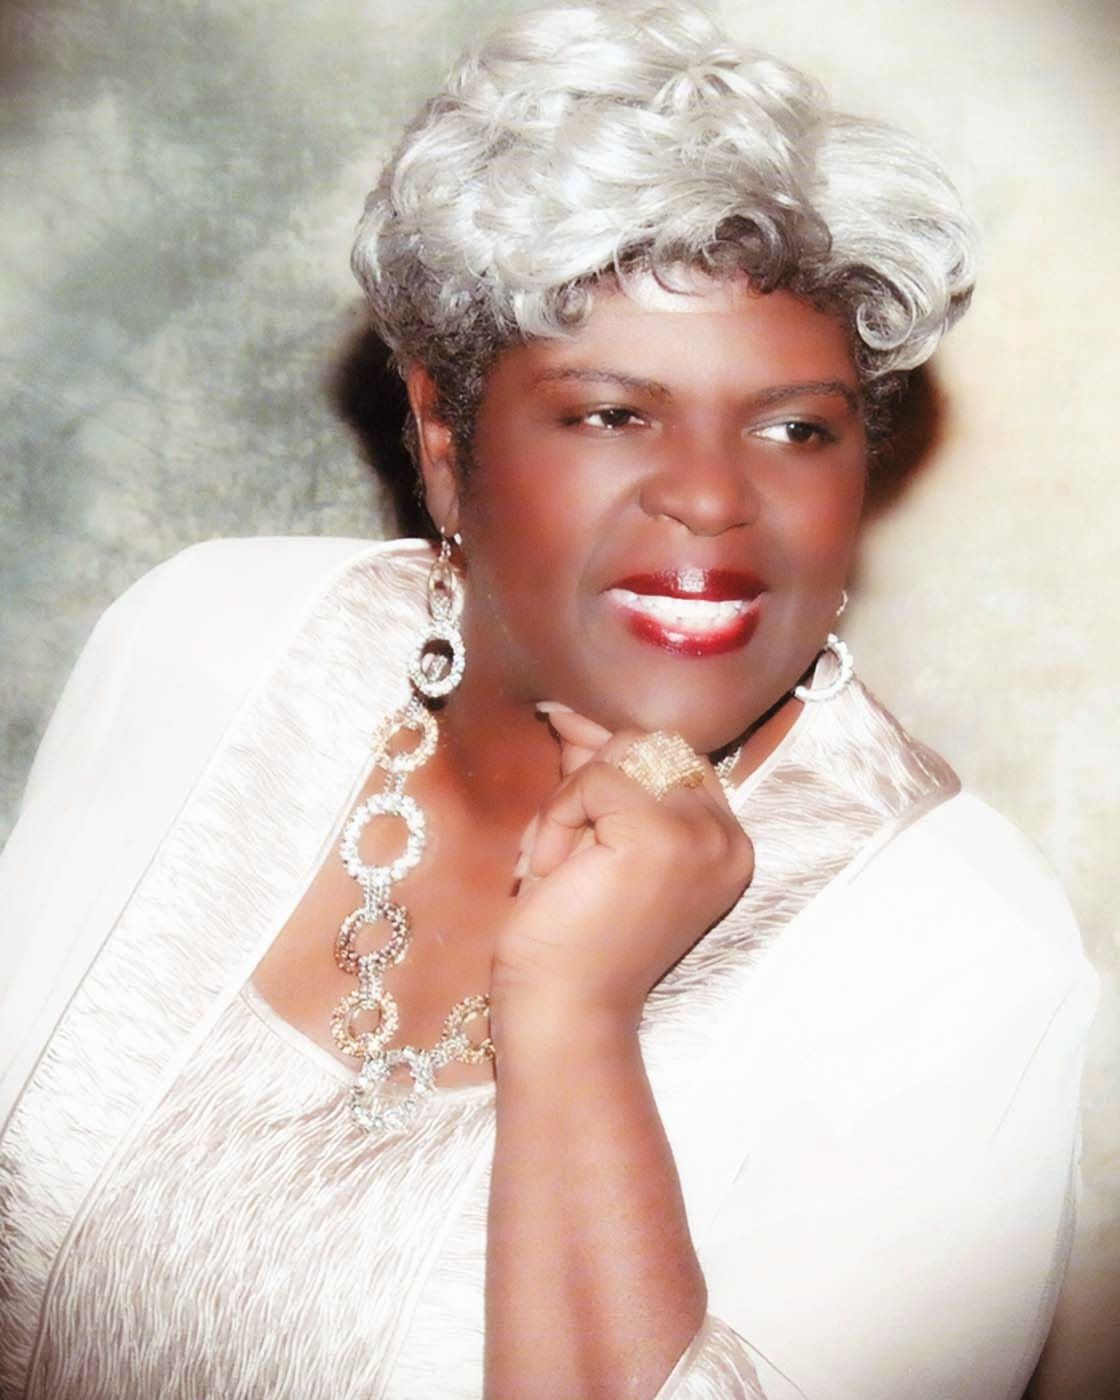 REVEREND, MARY A. JONES: VIDEO NEWS TV